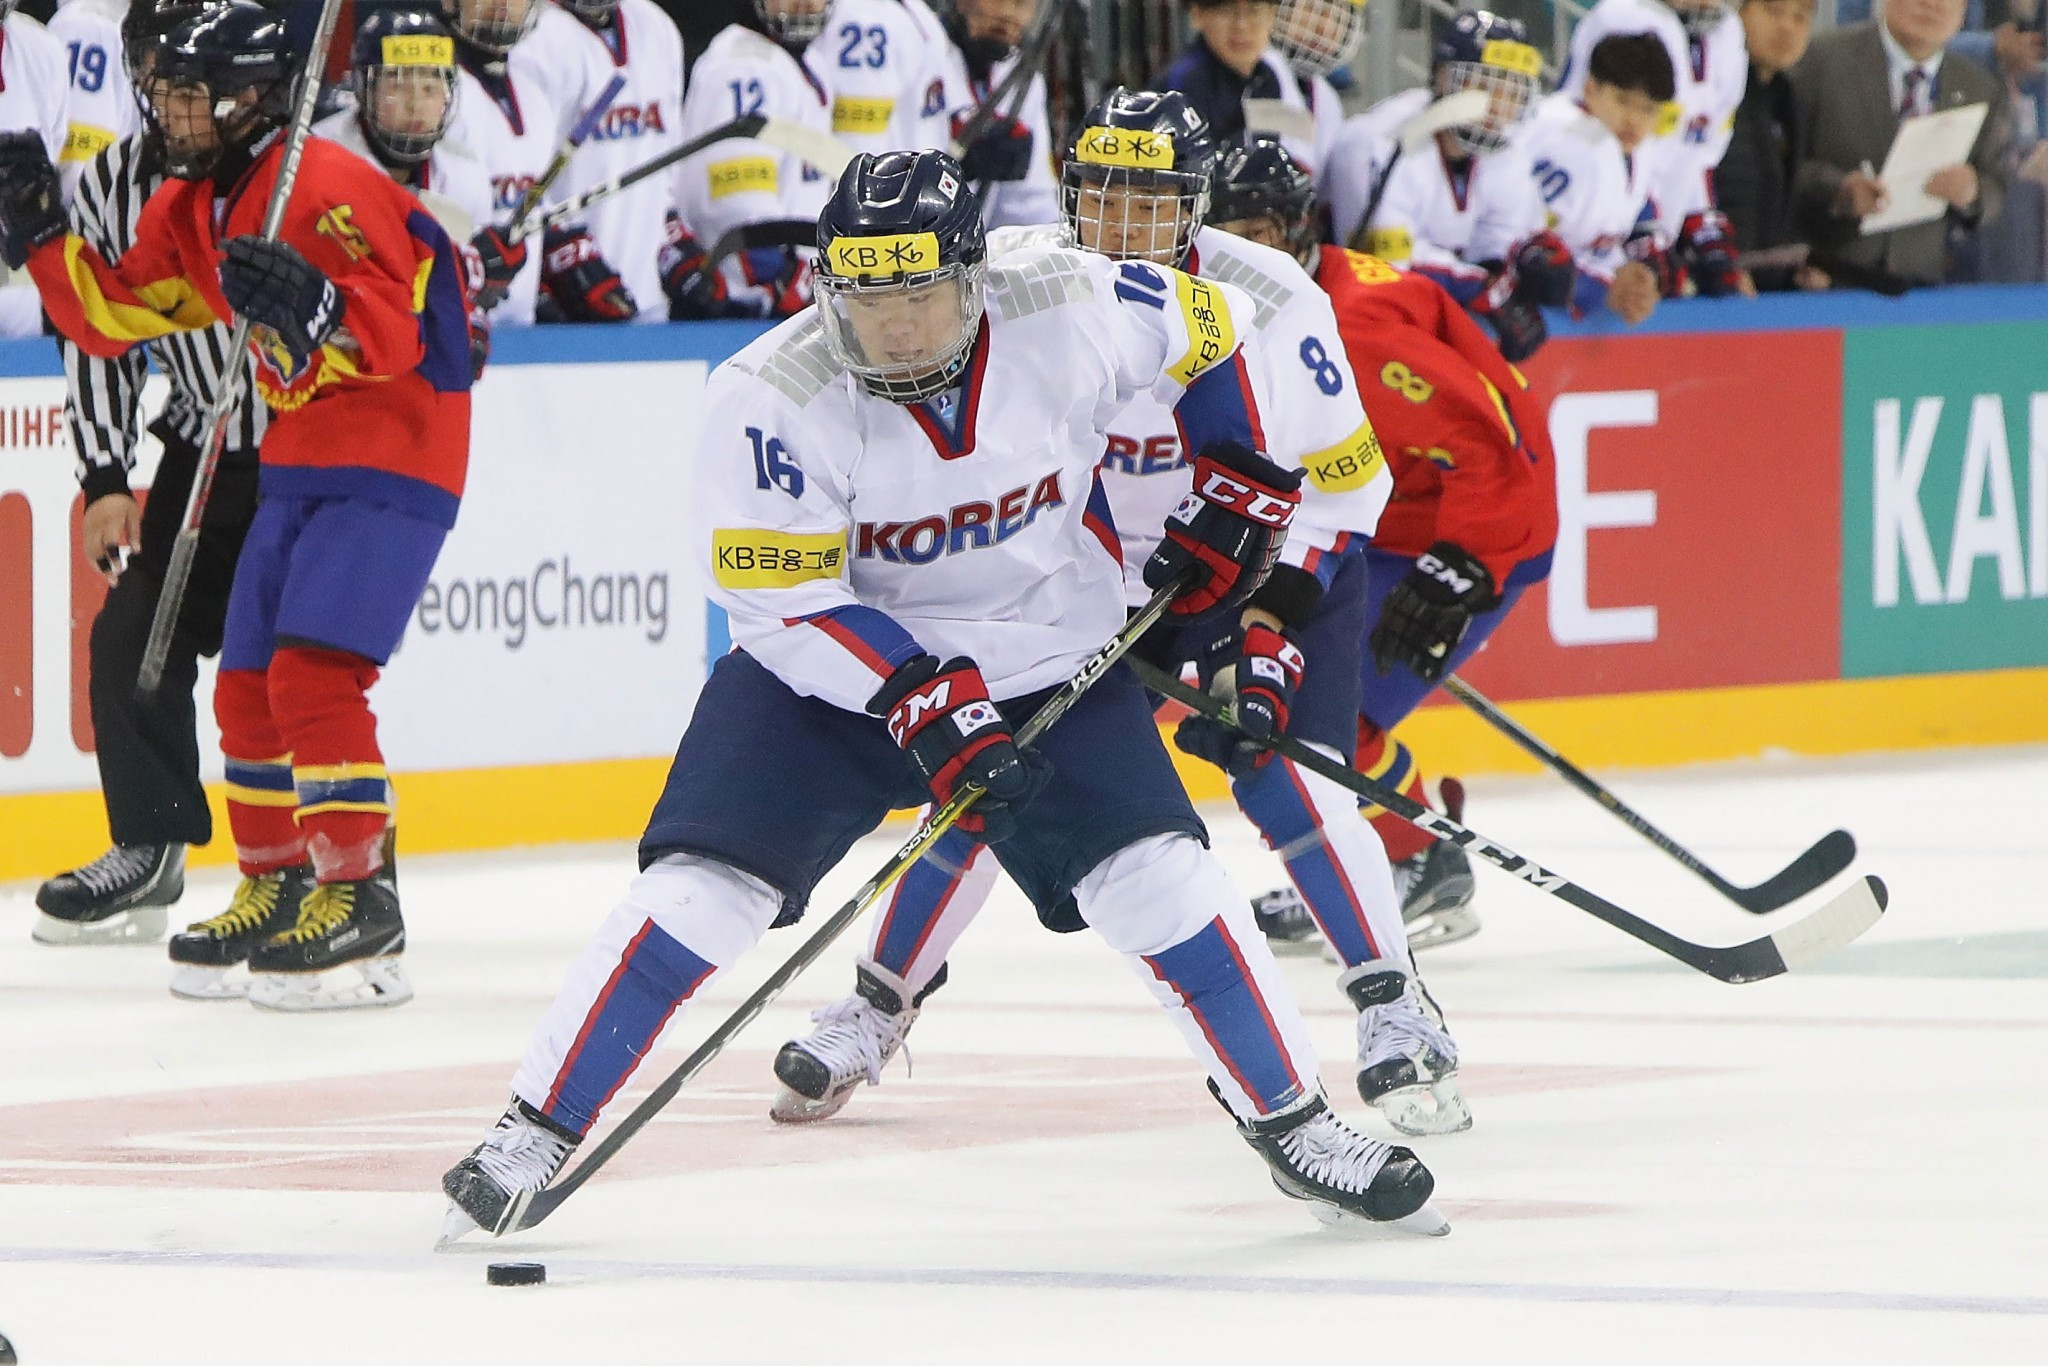 IIHF encouraged South Korea to recruit from overseas, official says